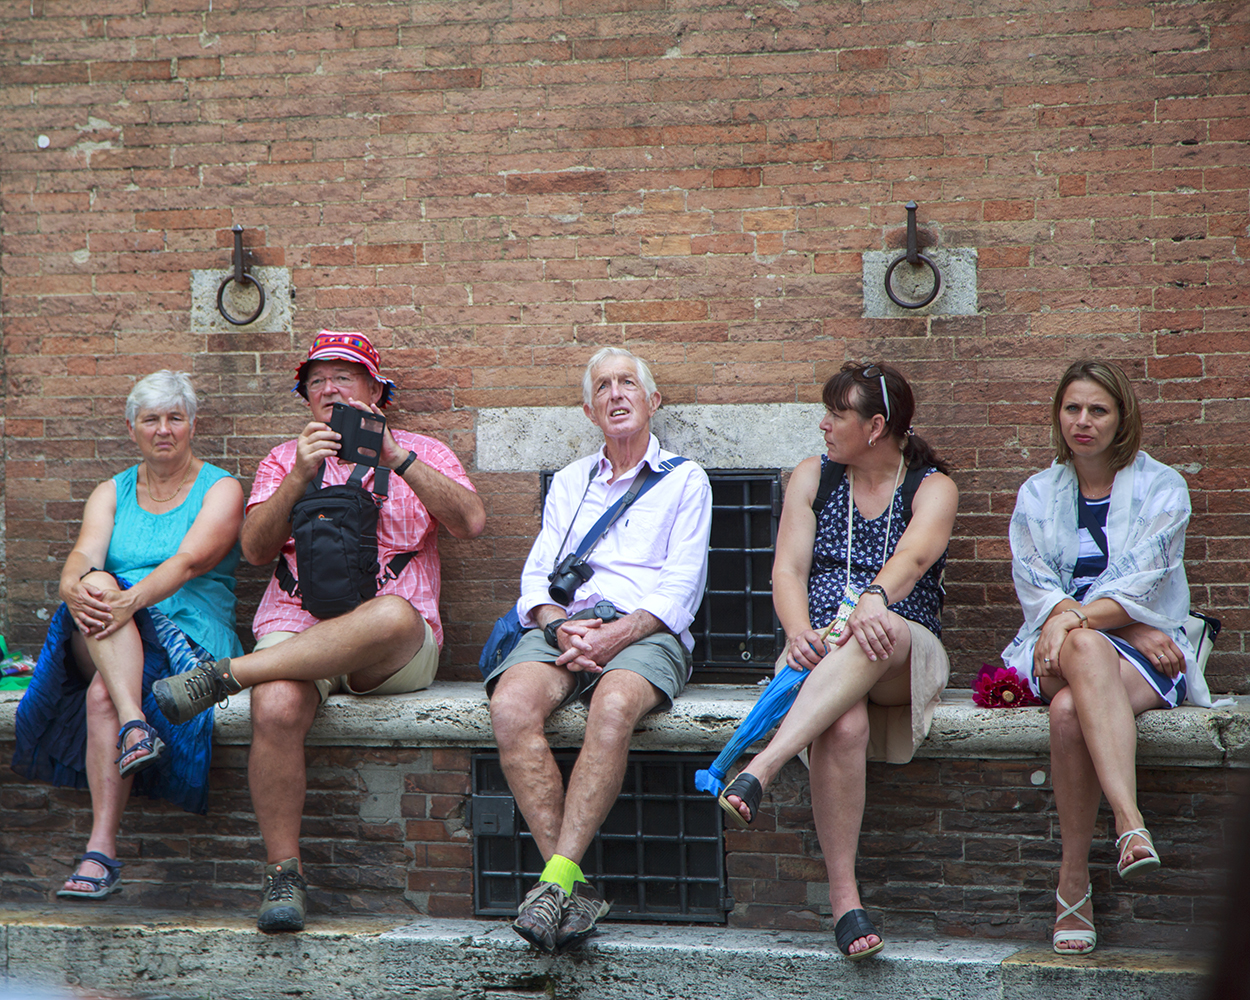 Suffusing My Senses In Siena - Image 11